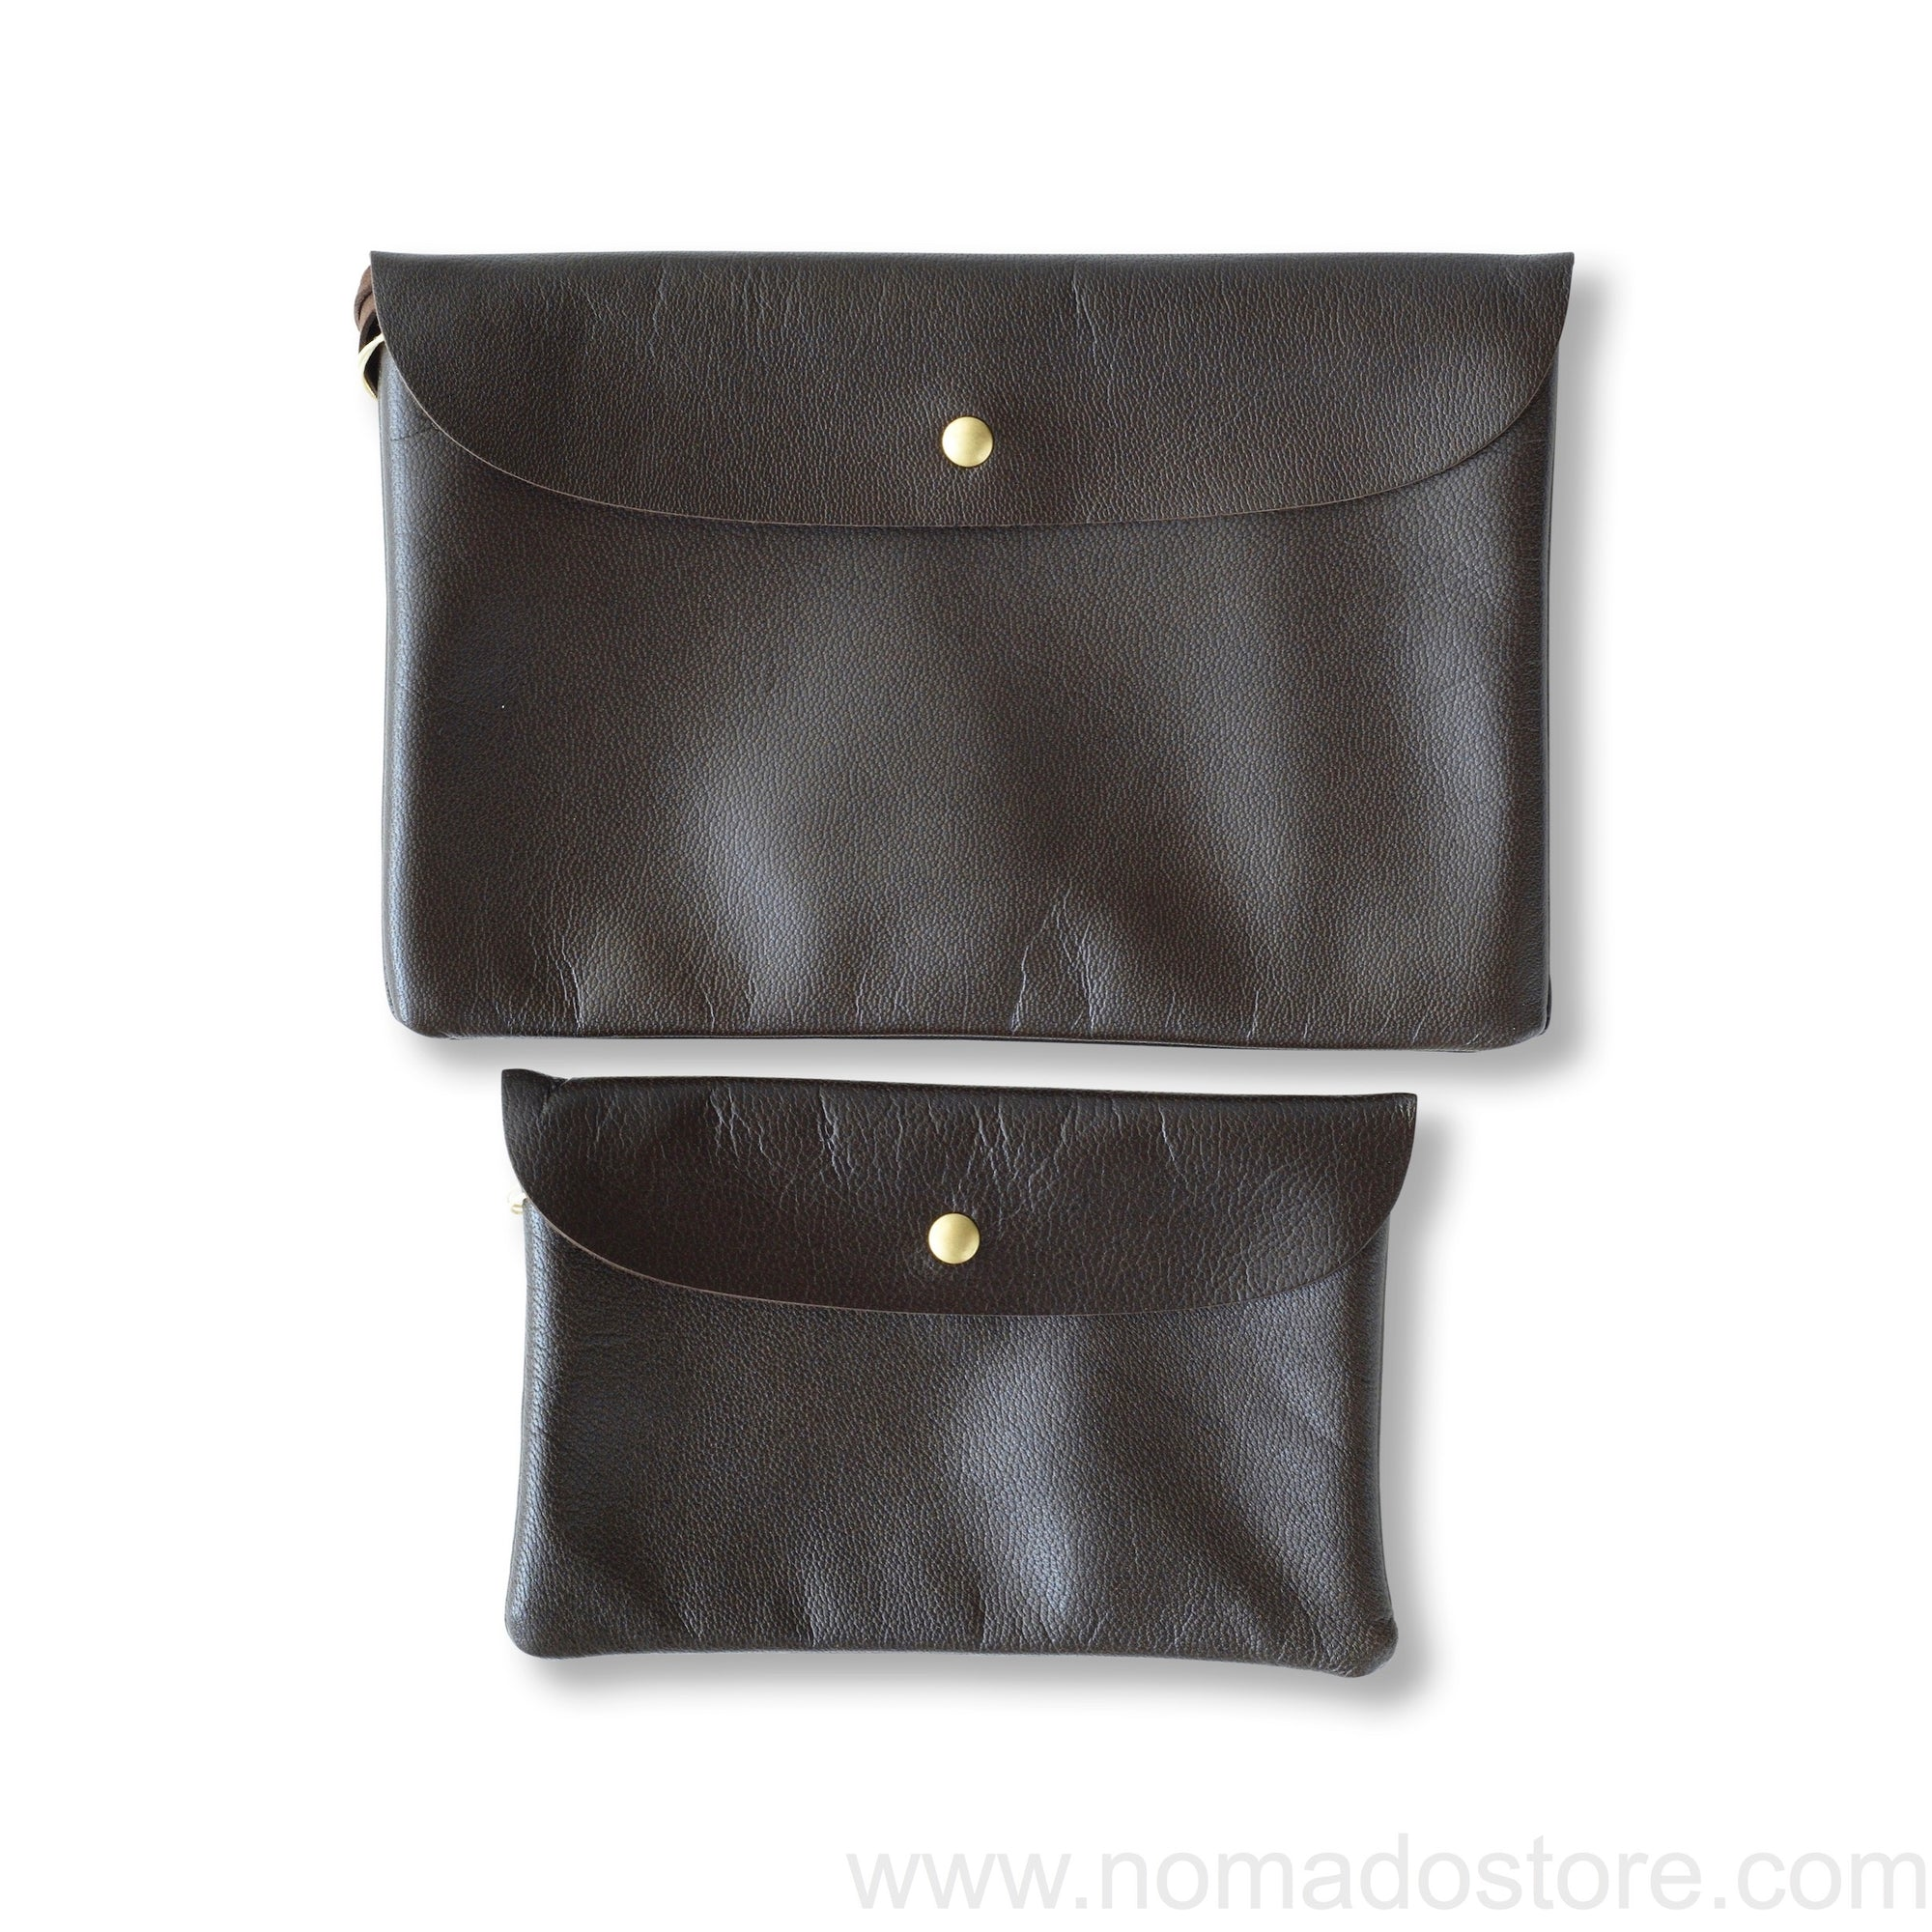 Marineday Robinson Pouch Brown (2 sizes) - NOMADO Store